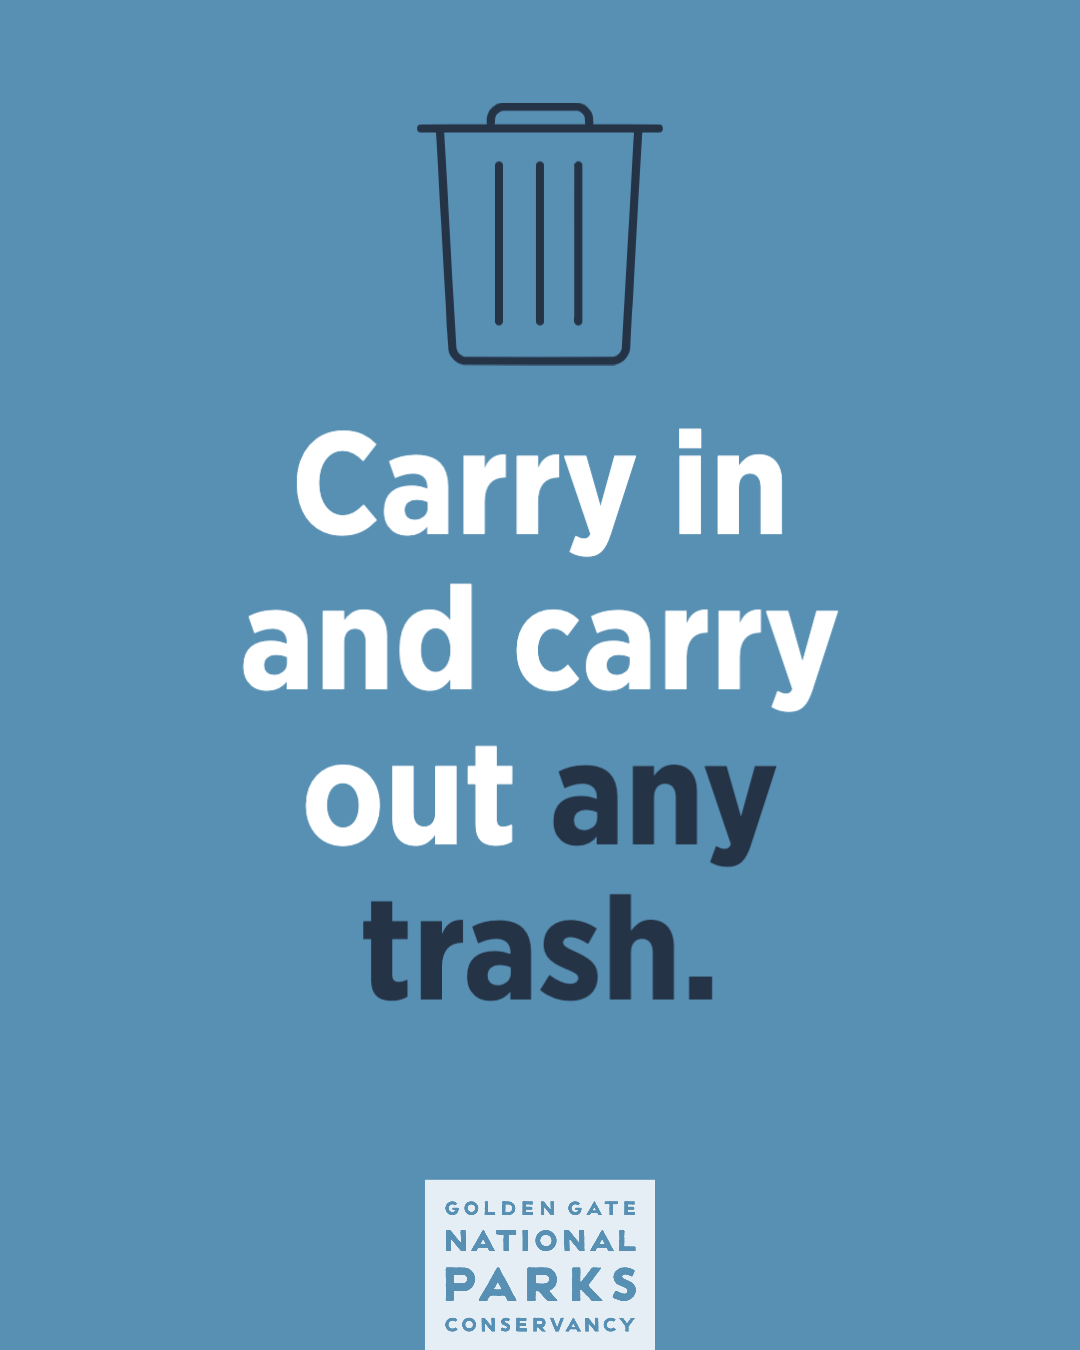 Carry in and carry out any trash